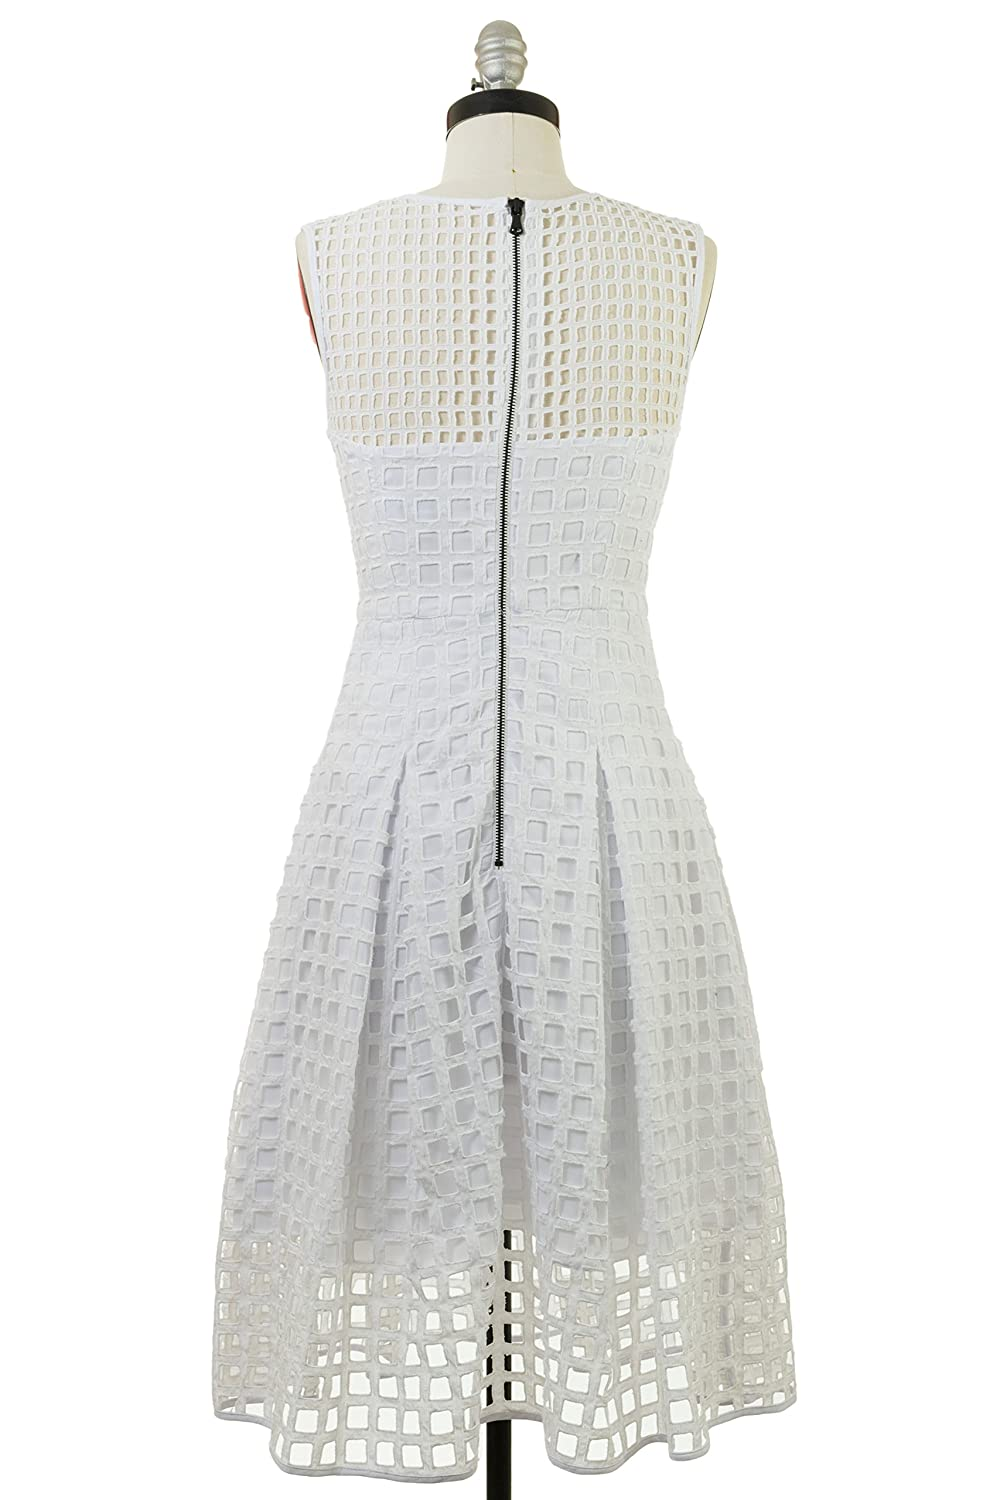 Milly Inverted Pleat Dress in White